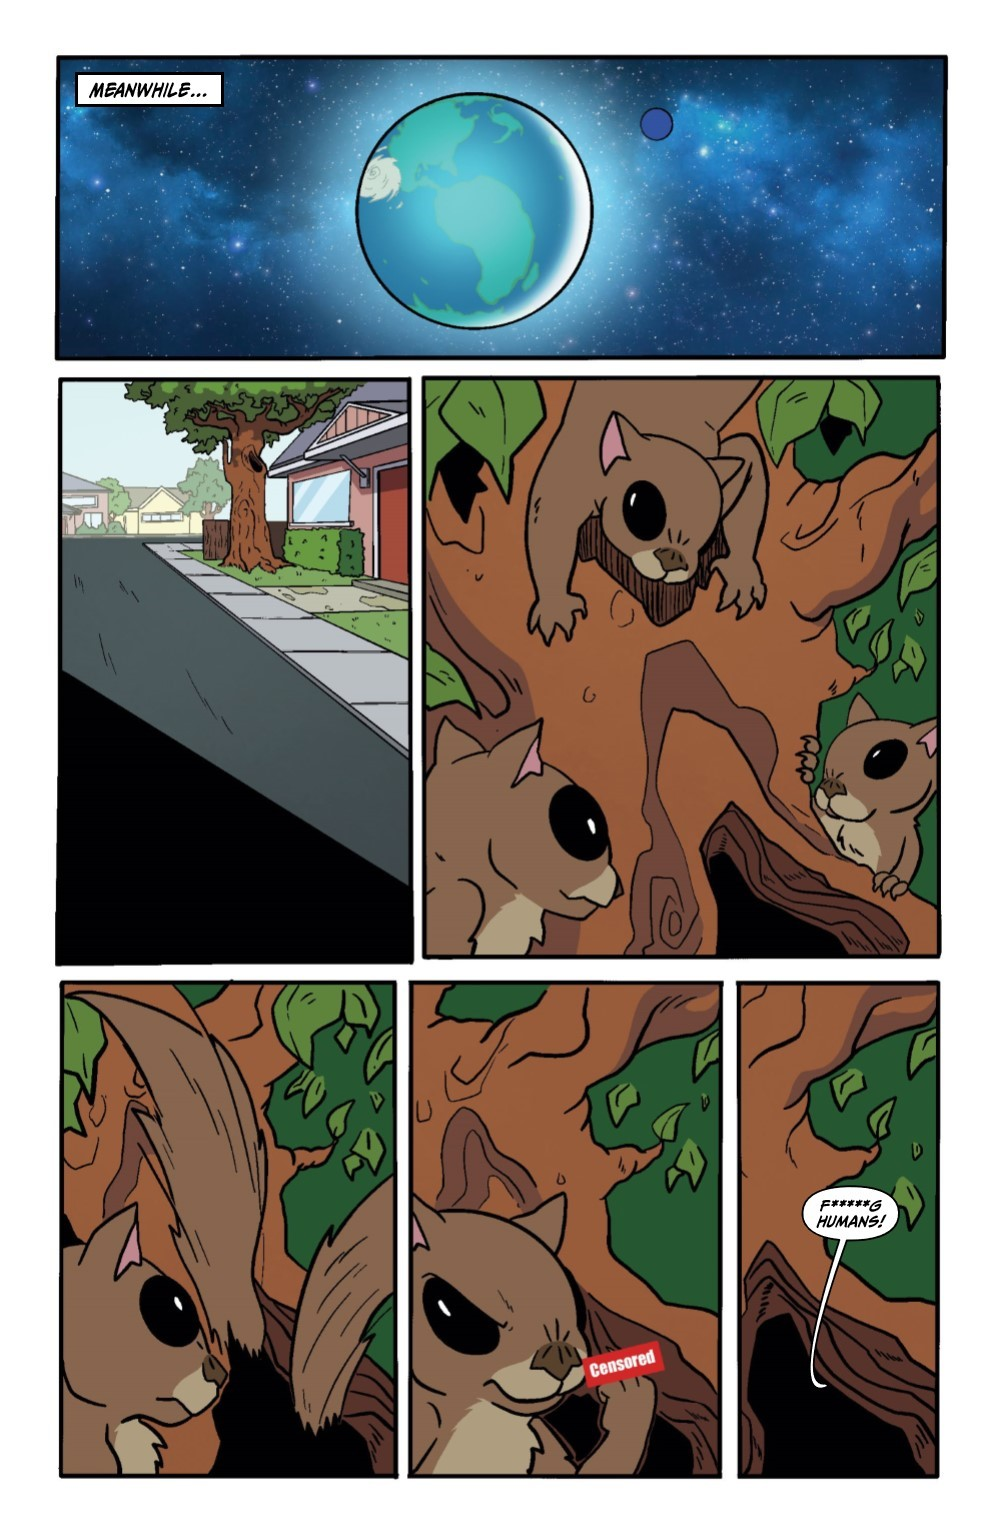 RM-PRES-SNUFFLES-1-REFERENCE-09 ComicList Previews: RICK AND MORTY PRESENTS SNUFFLES GOES TO WAR #1